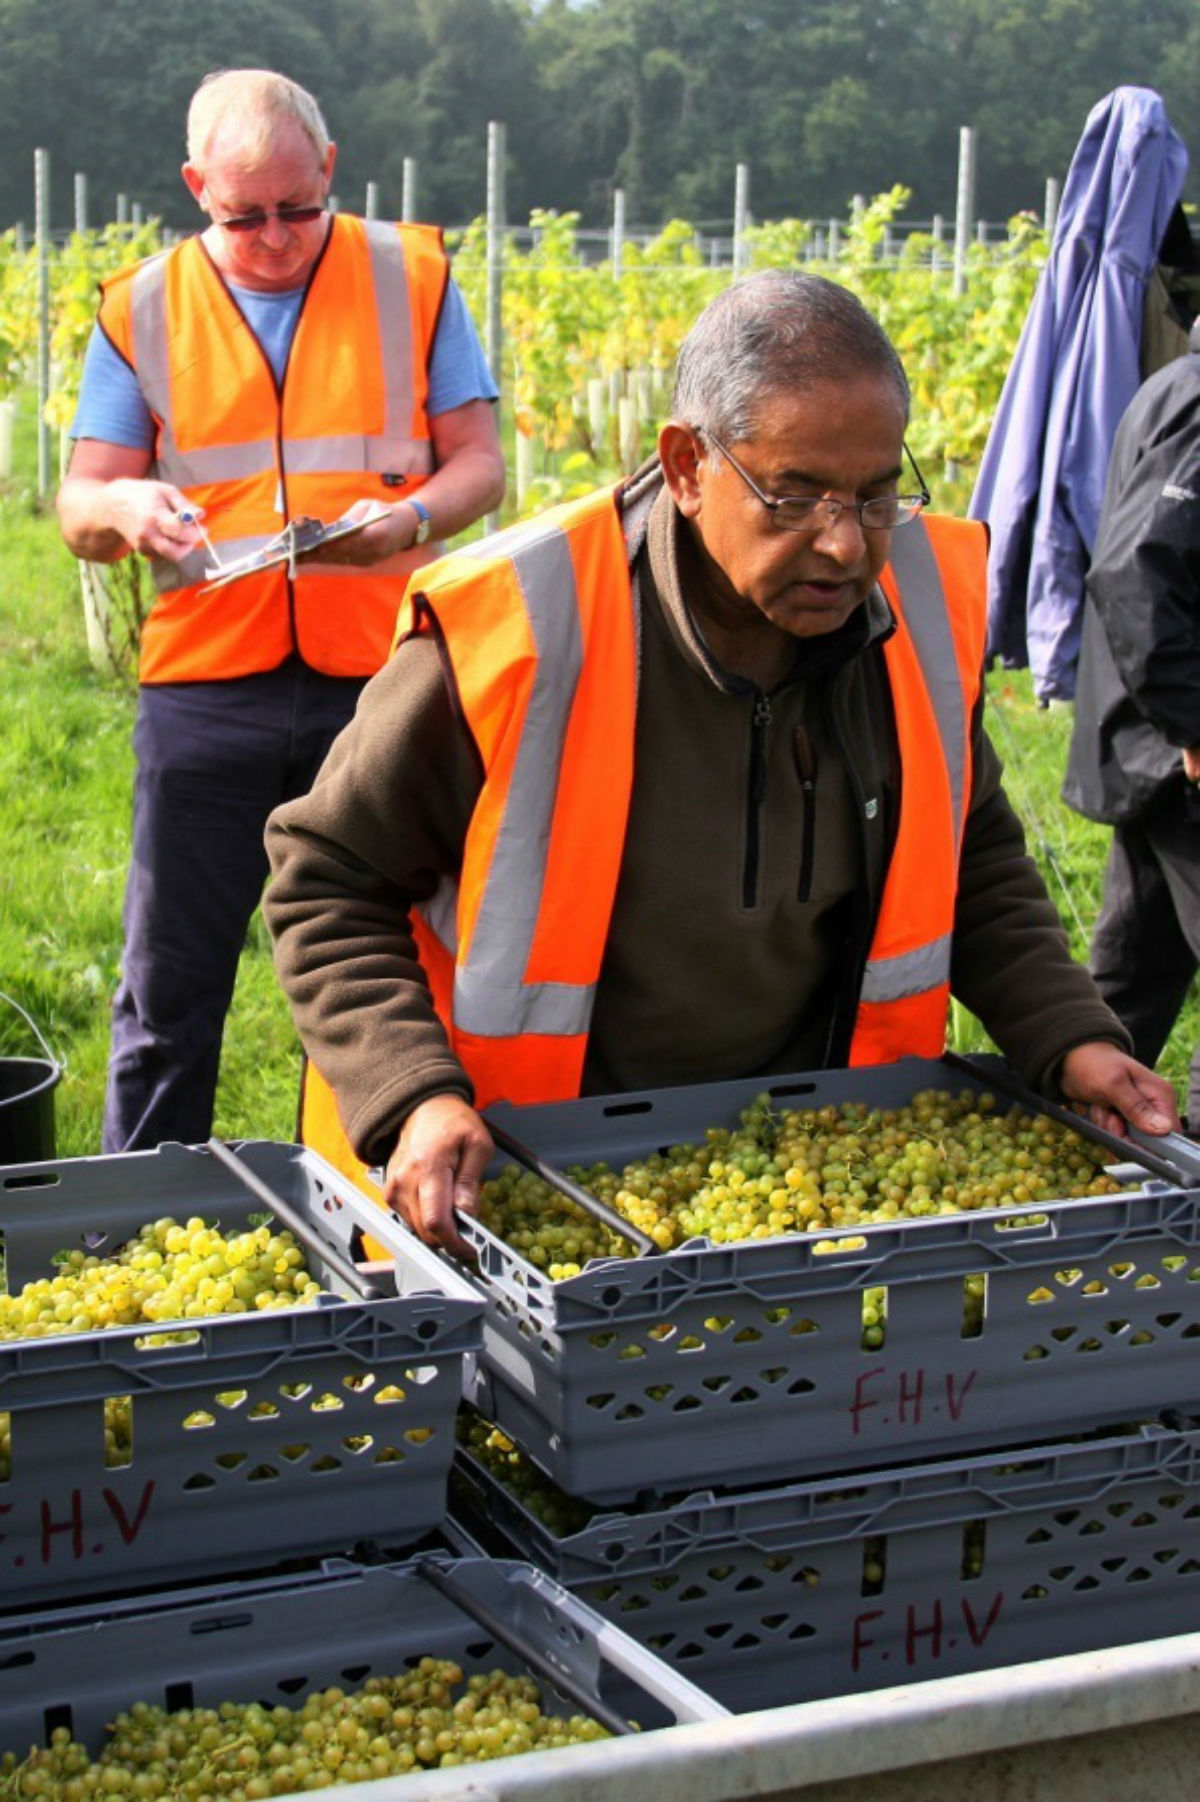 The Forty Hall vineyard describes itself as a community-led, horticultural enterprise